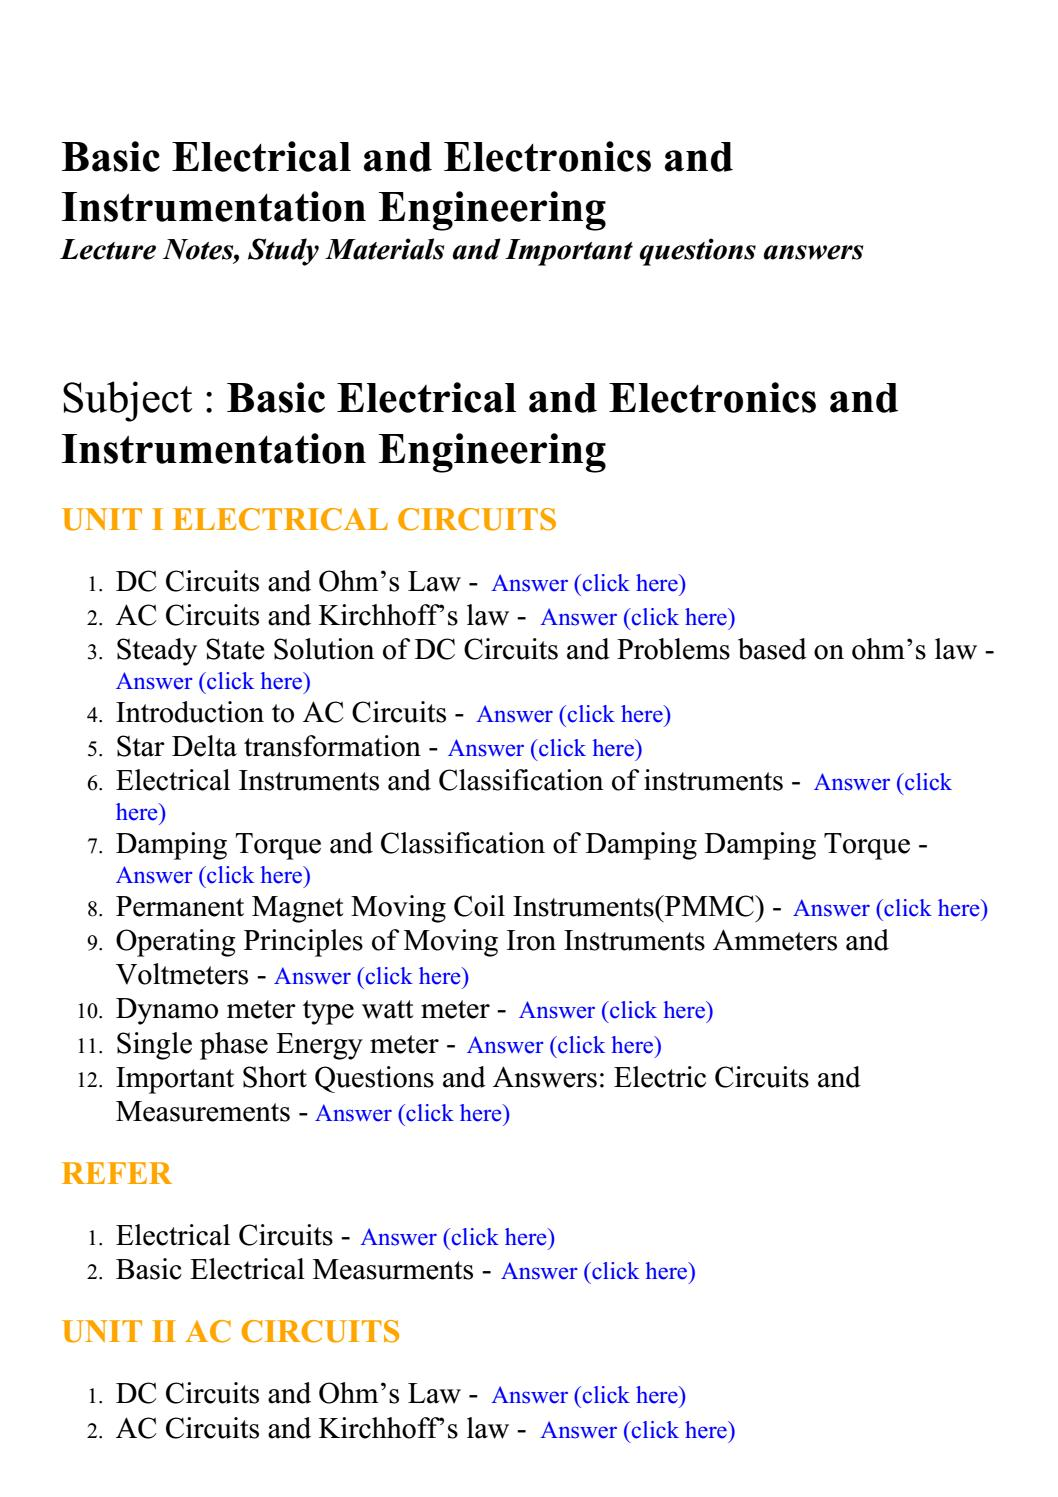 Basic Electrical And Electronics Instrumentation Engineering Electricalcircuits1 Lecture Notes Study Materials By Brainkart Com Issuu